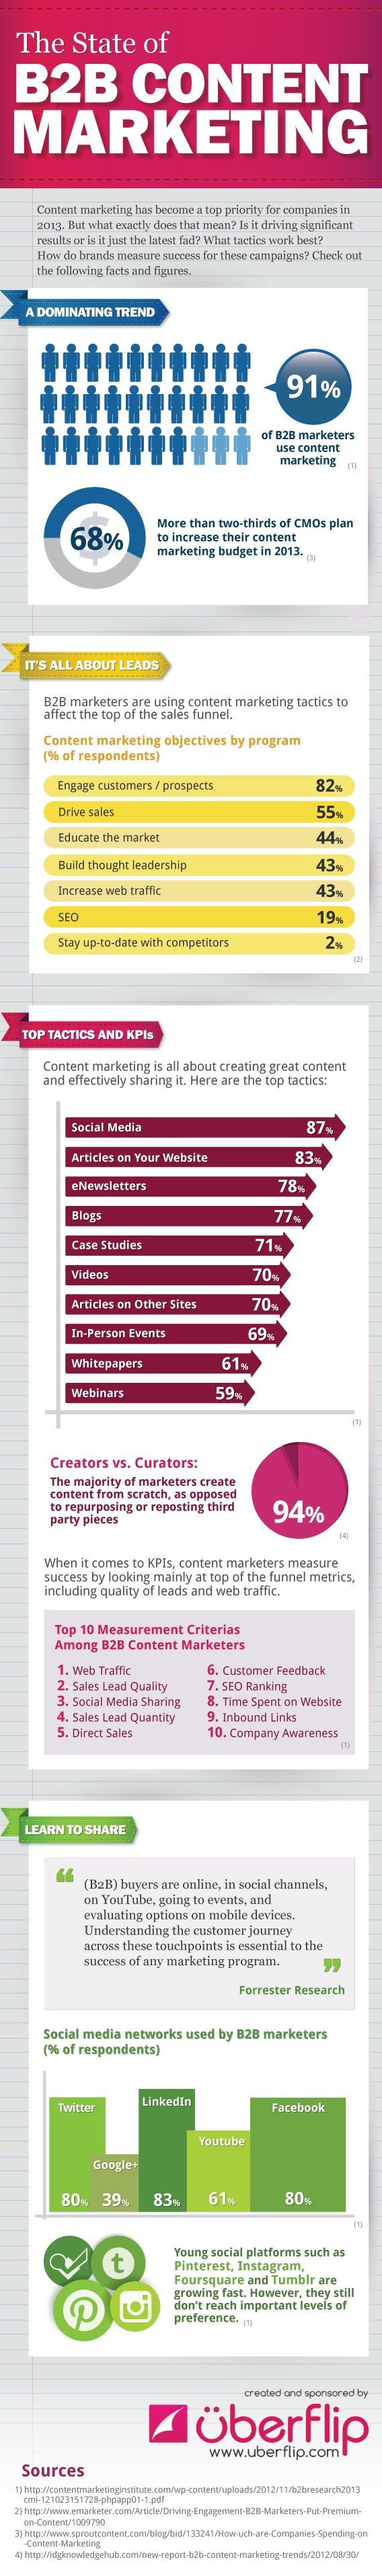 Uberflip created the following infographic by compiling results of various content marketing studies